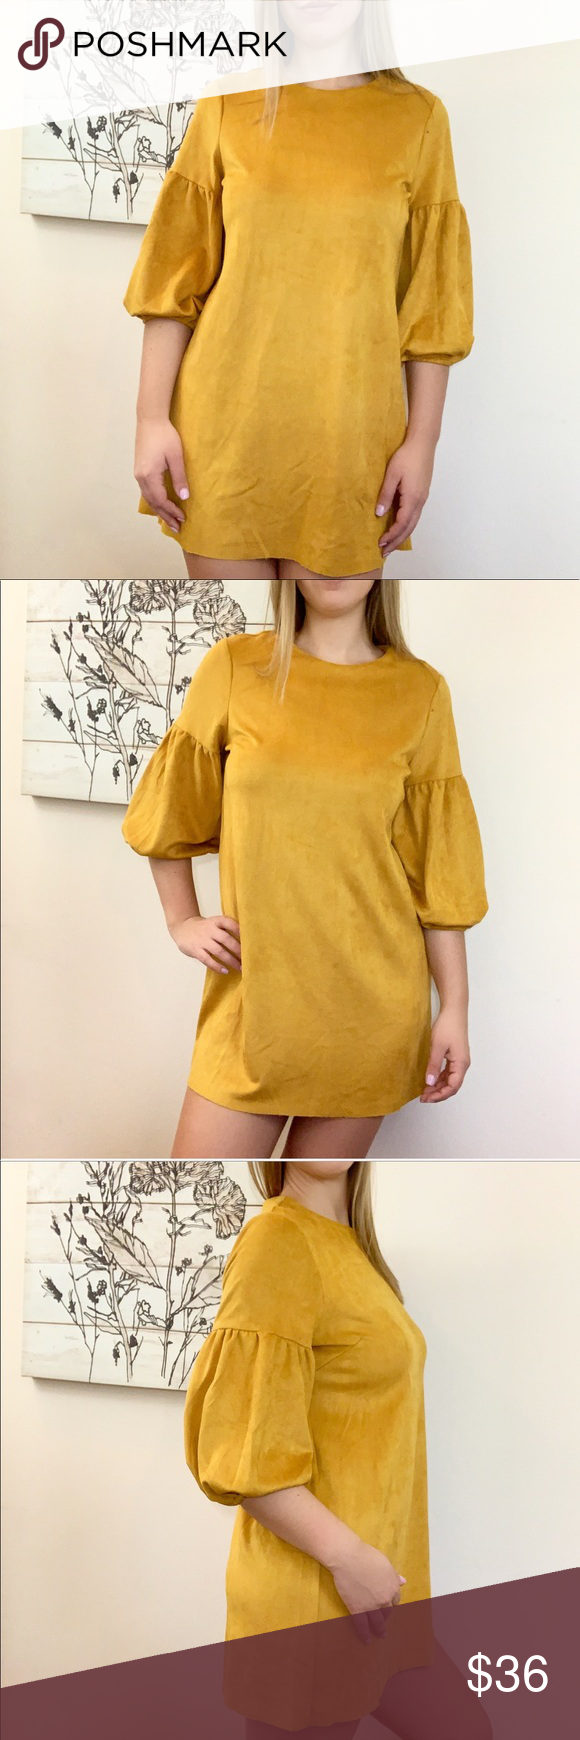 719bde21abf BUY 2 GET 1  Stormy  Suede Tunic Dress  Stormy  suede tunic dress by ...